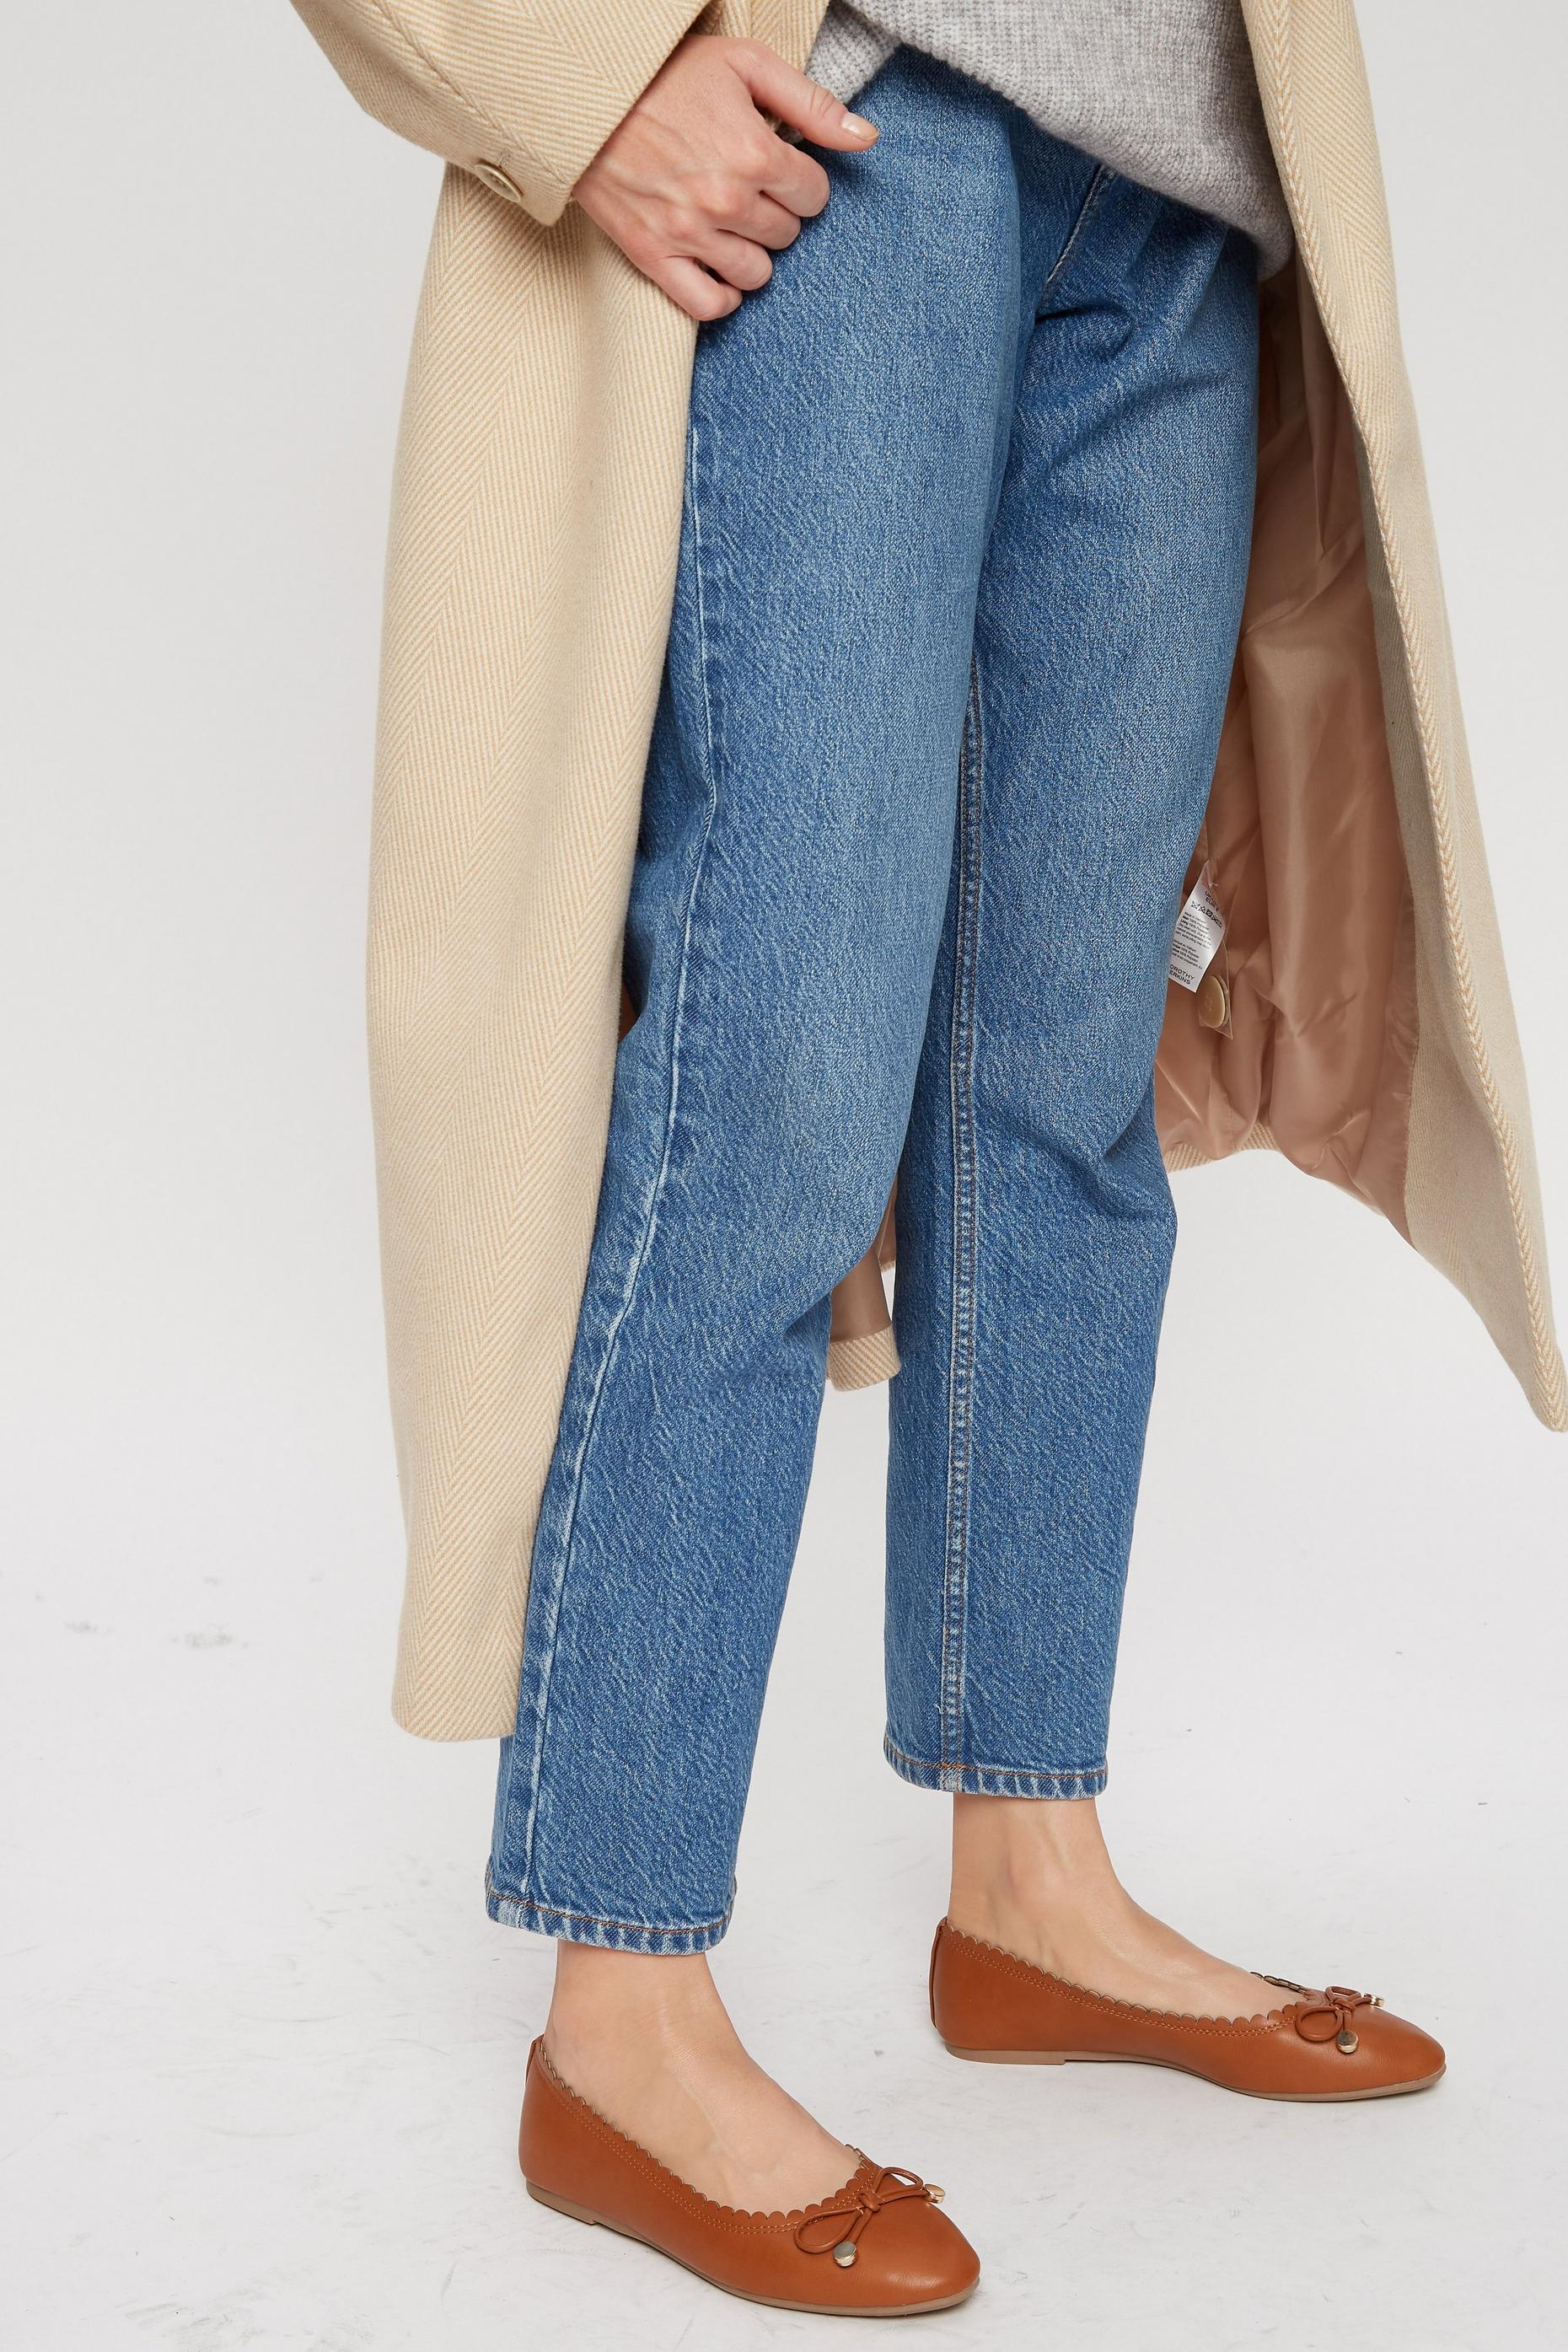 Tan Peace Pumps